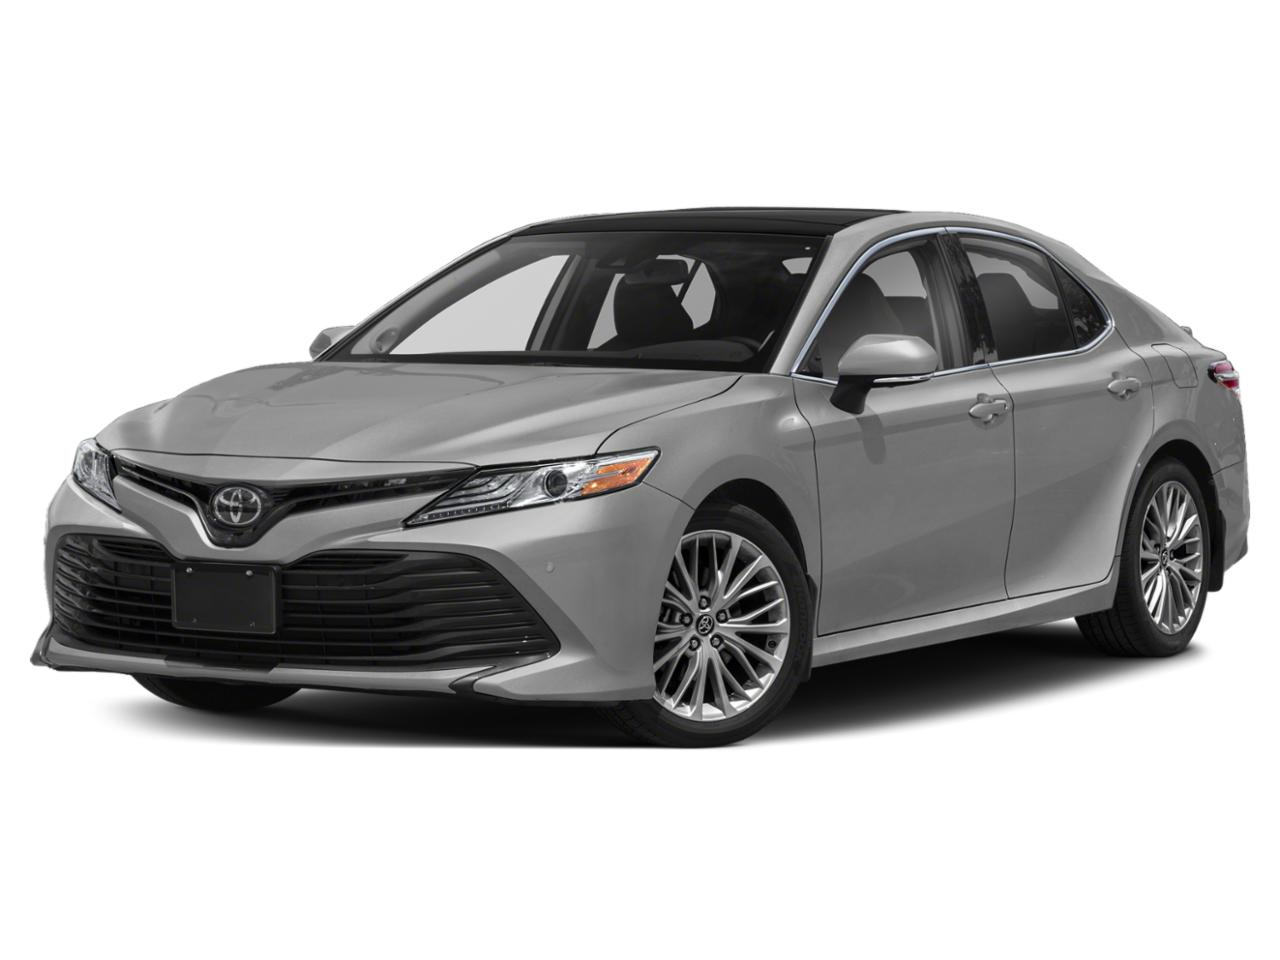 2019 Toyota Camry Vehicle Photo in Van Nuys, CA 91401